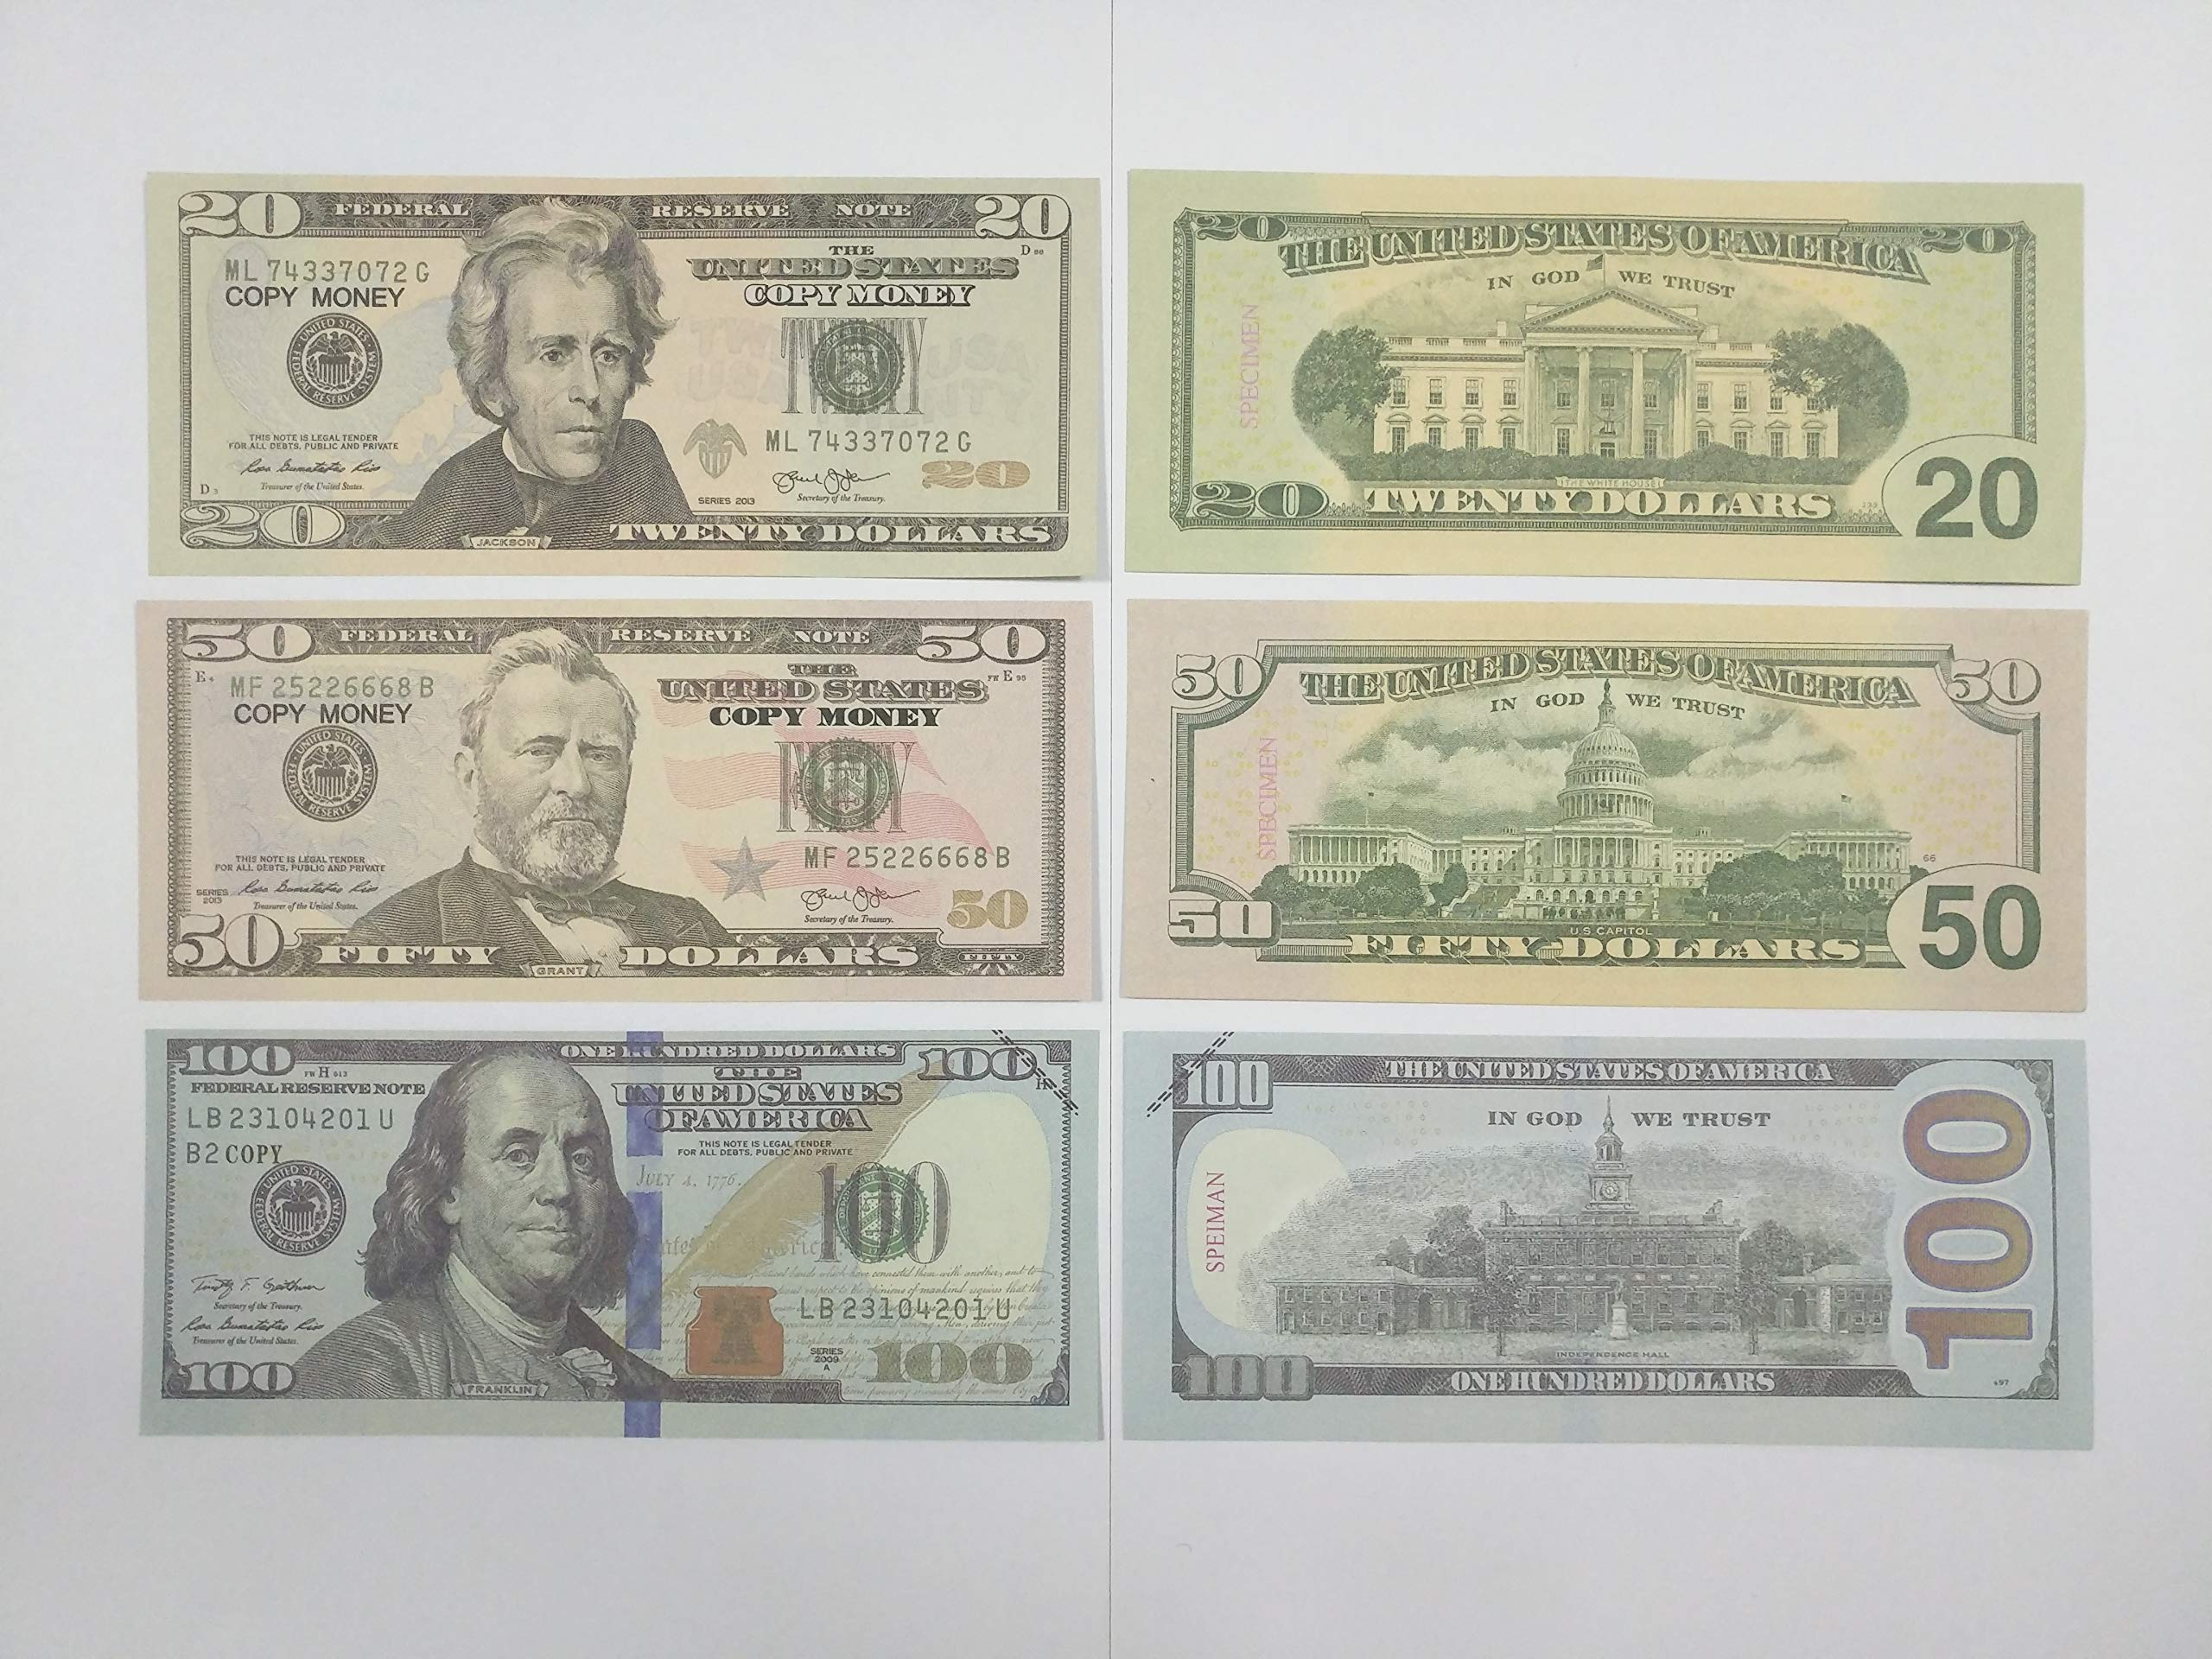 AL'IVER Fake Money Prop Money $6800 Copy Money Realistic Double Sided Money Stack $20,$ 50, $100 Bills Total 120 Bills Full Print Motion Picture Money … …